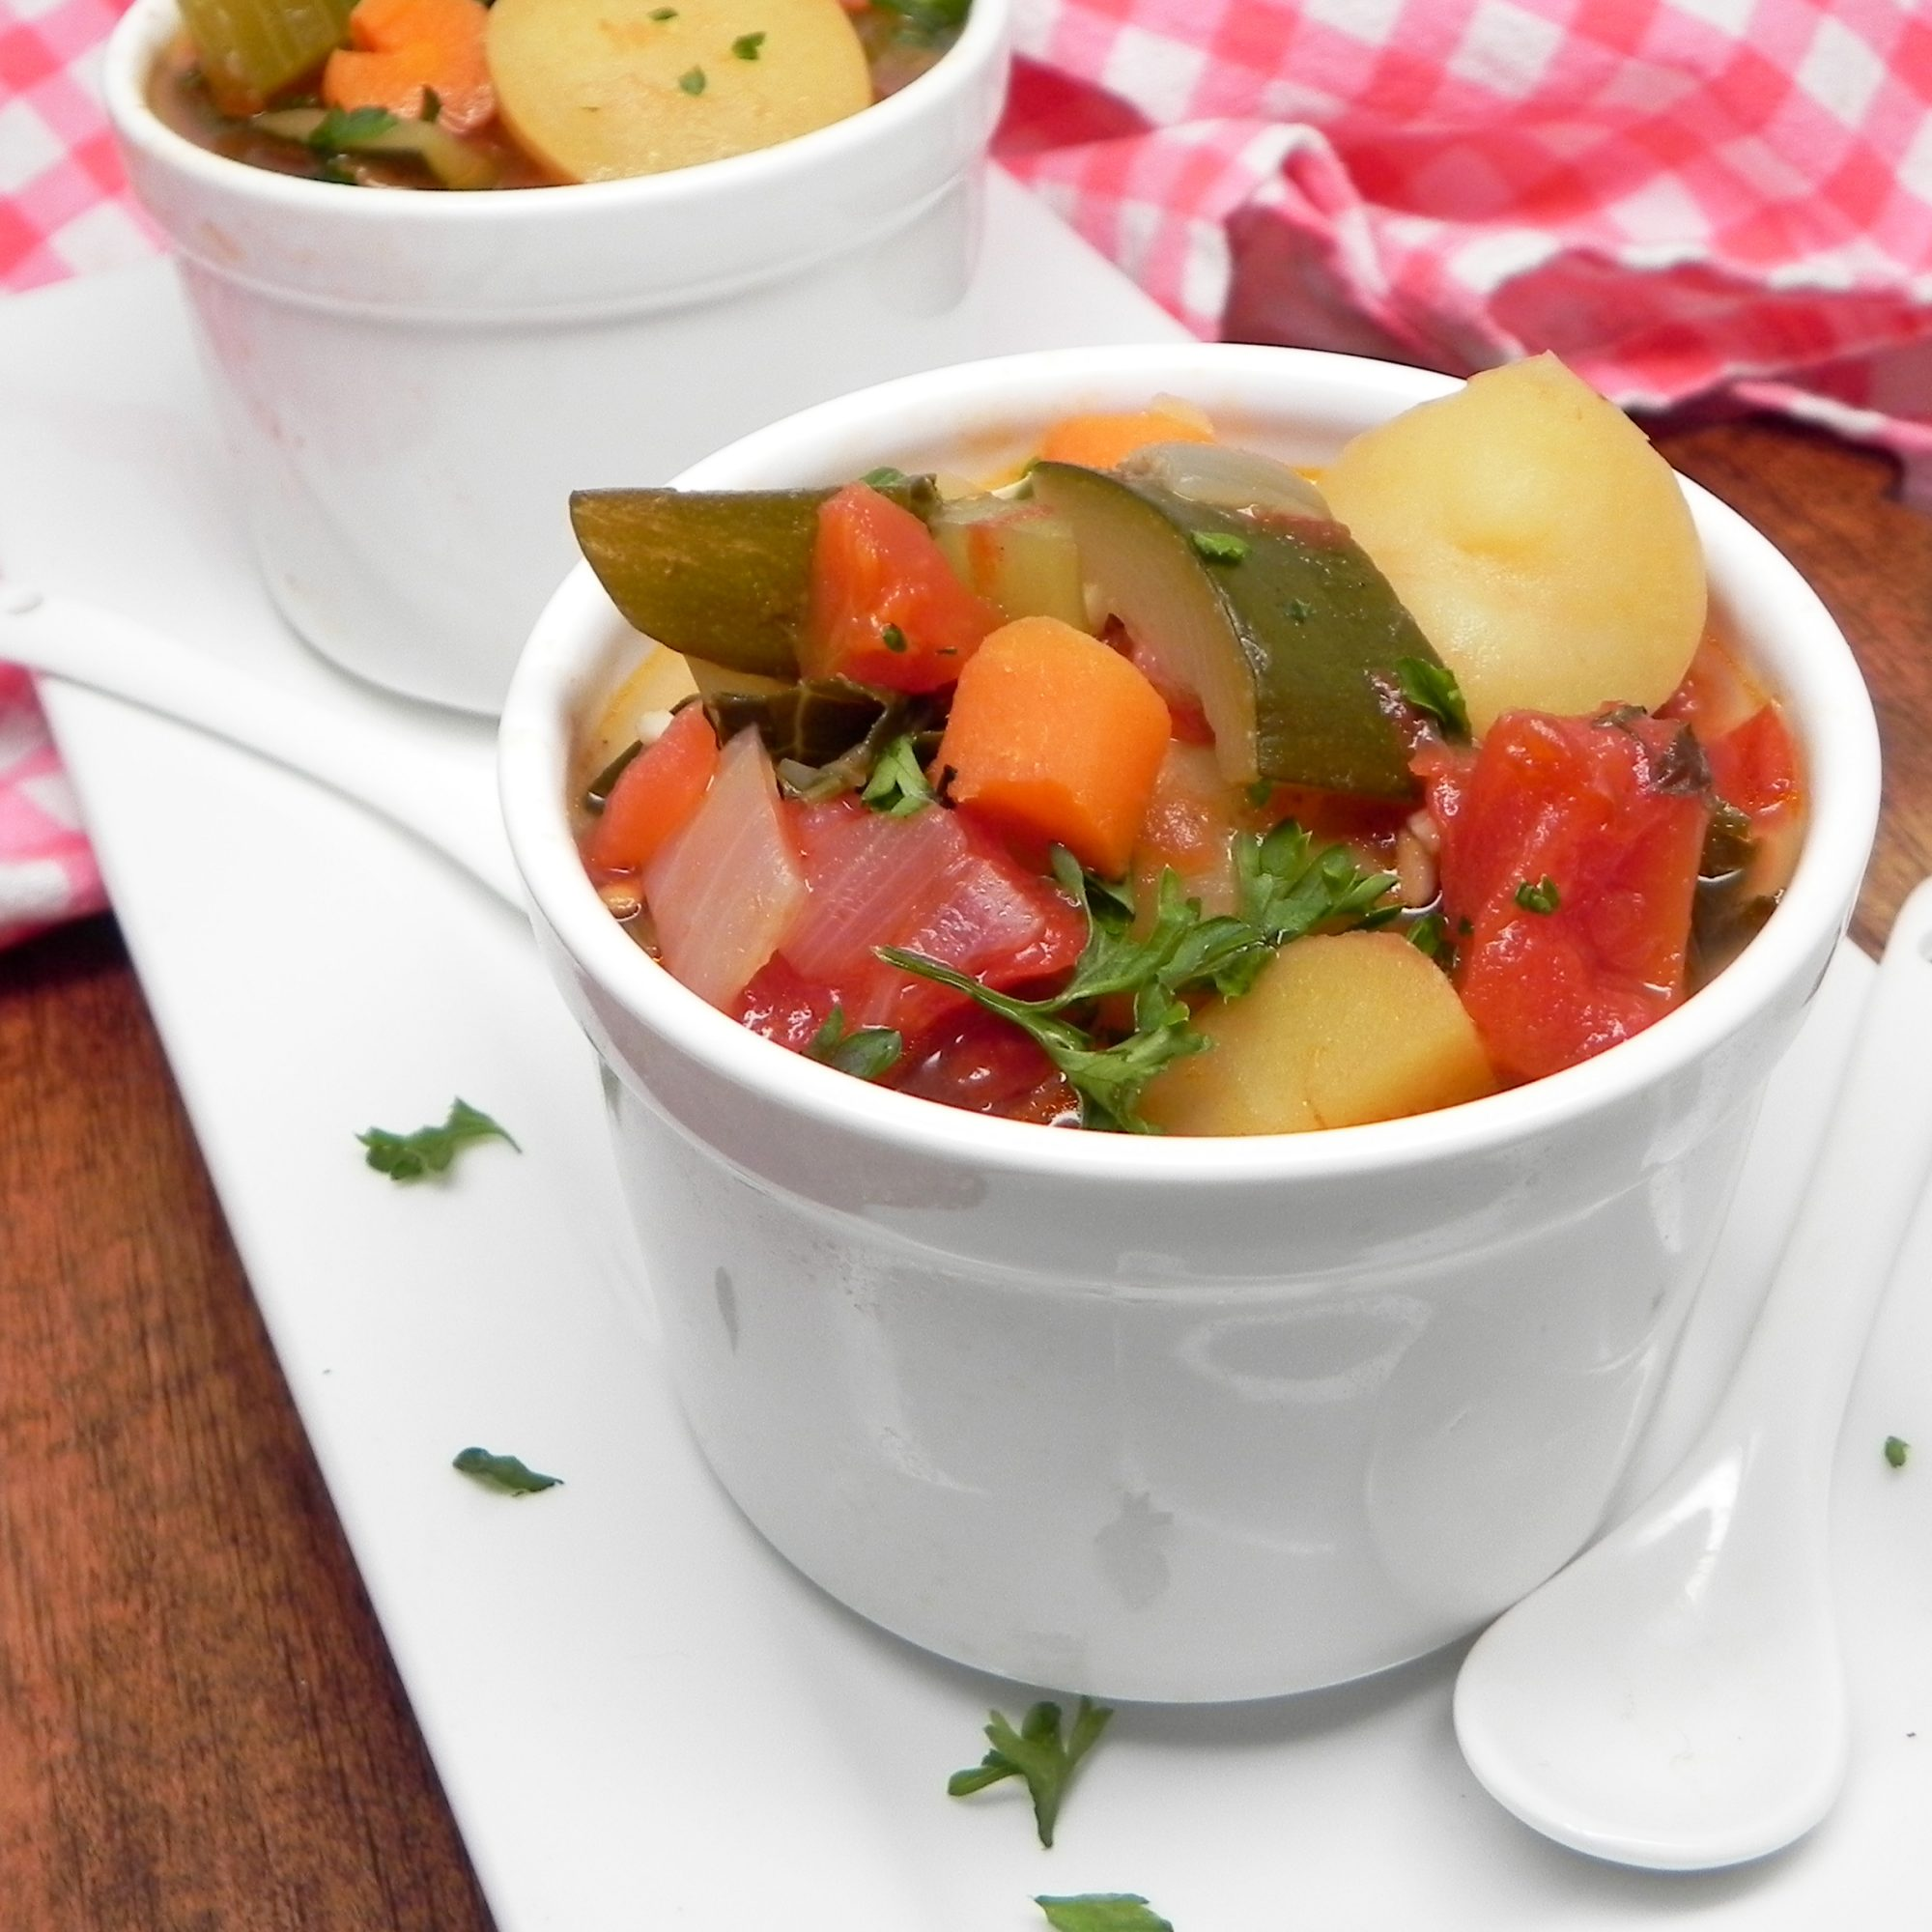 two small bowls of vegetable soup